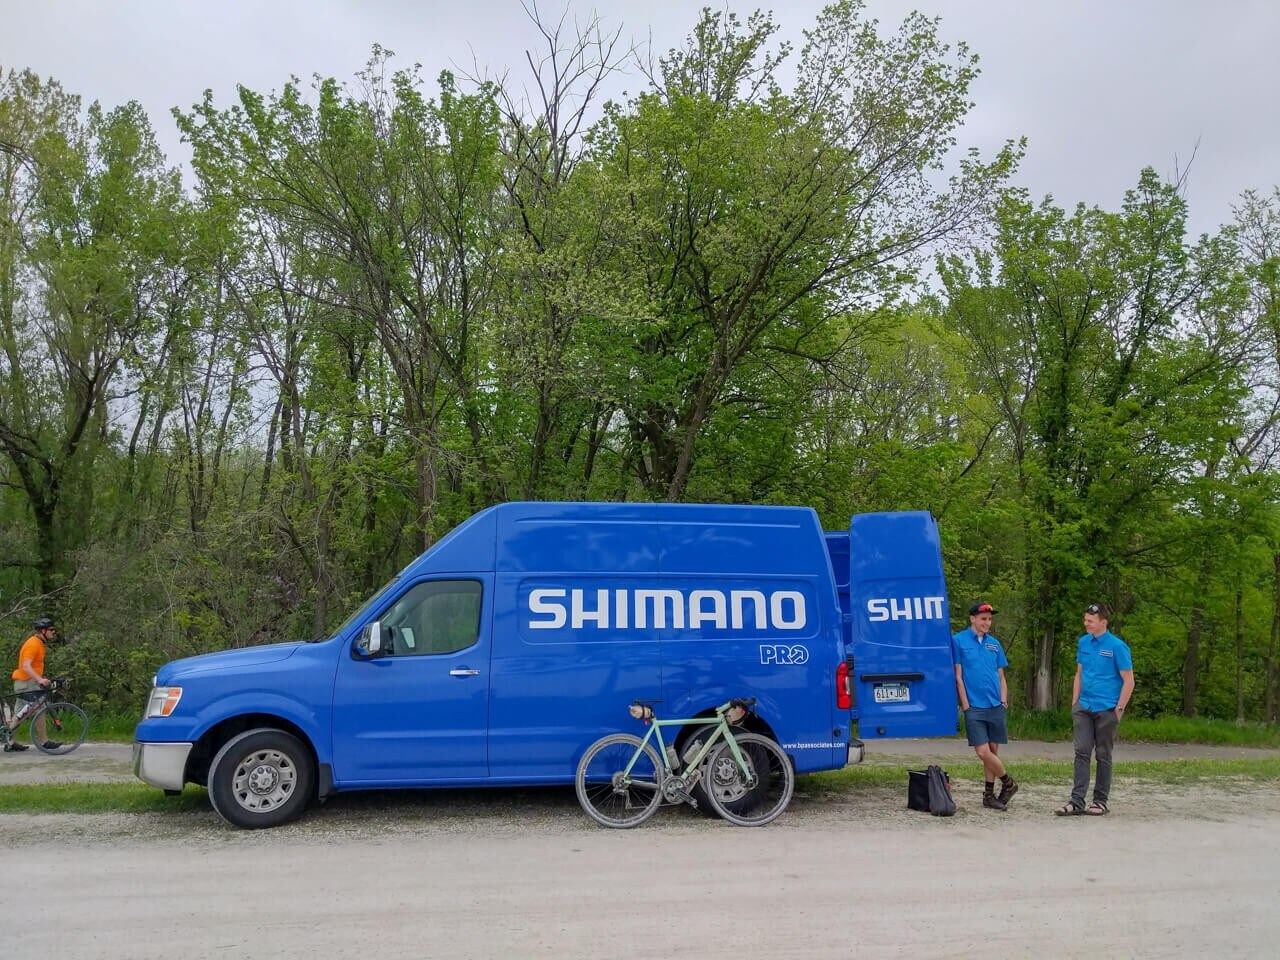 Shimano Support Vehicle